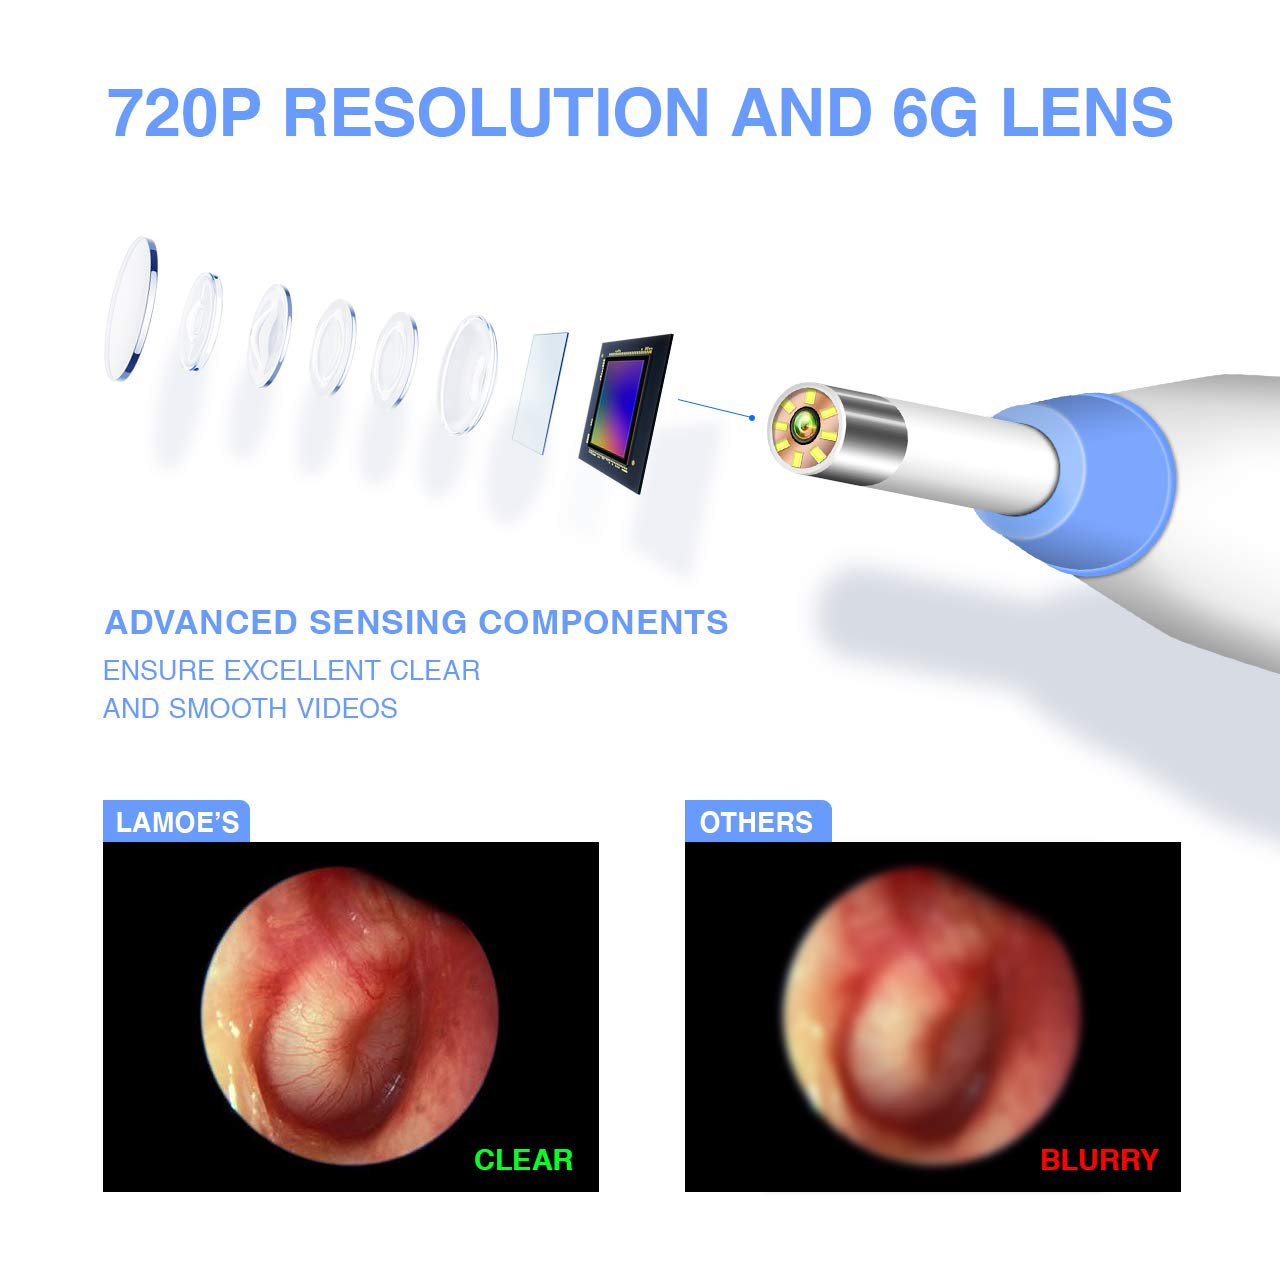 Wireless Ear Scope 720HD Earwax Cleaning Camera Tool For Android IOS Ear Inspection Scope with Lights No Need USB Ear Cleaning Endoscope Ear Otoscope with 6 Adjustable LEDs Smartphone and Tablet